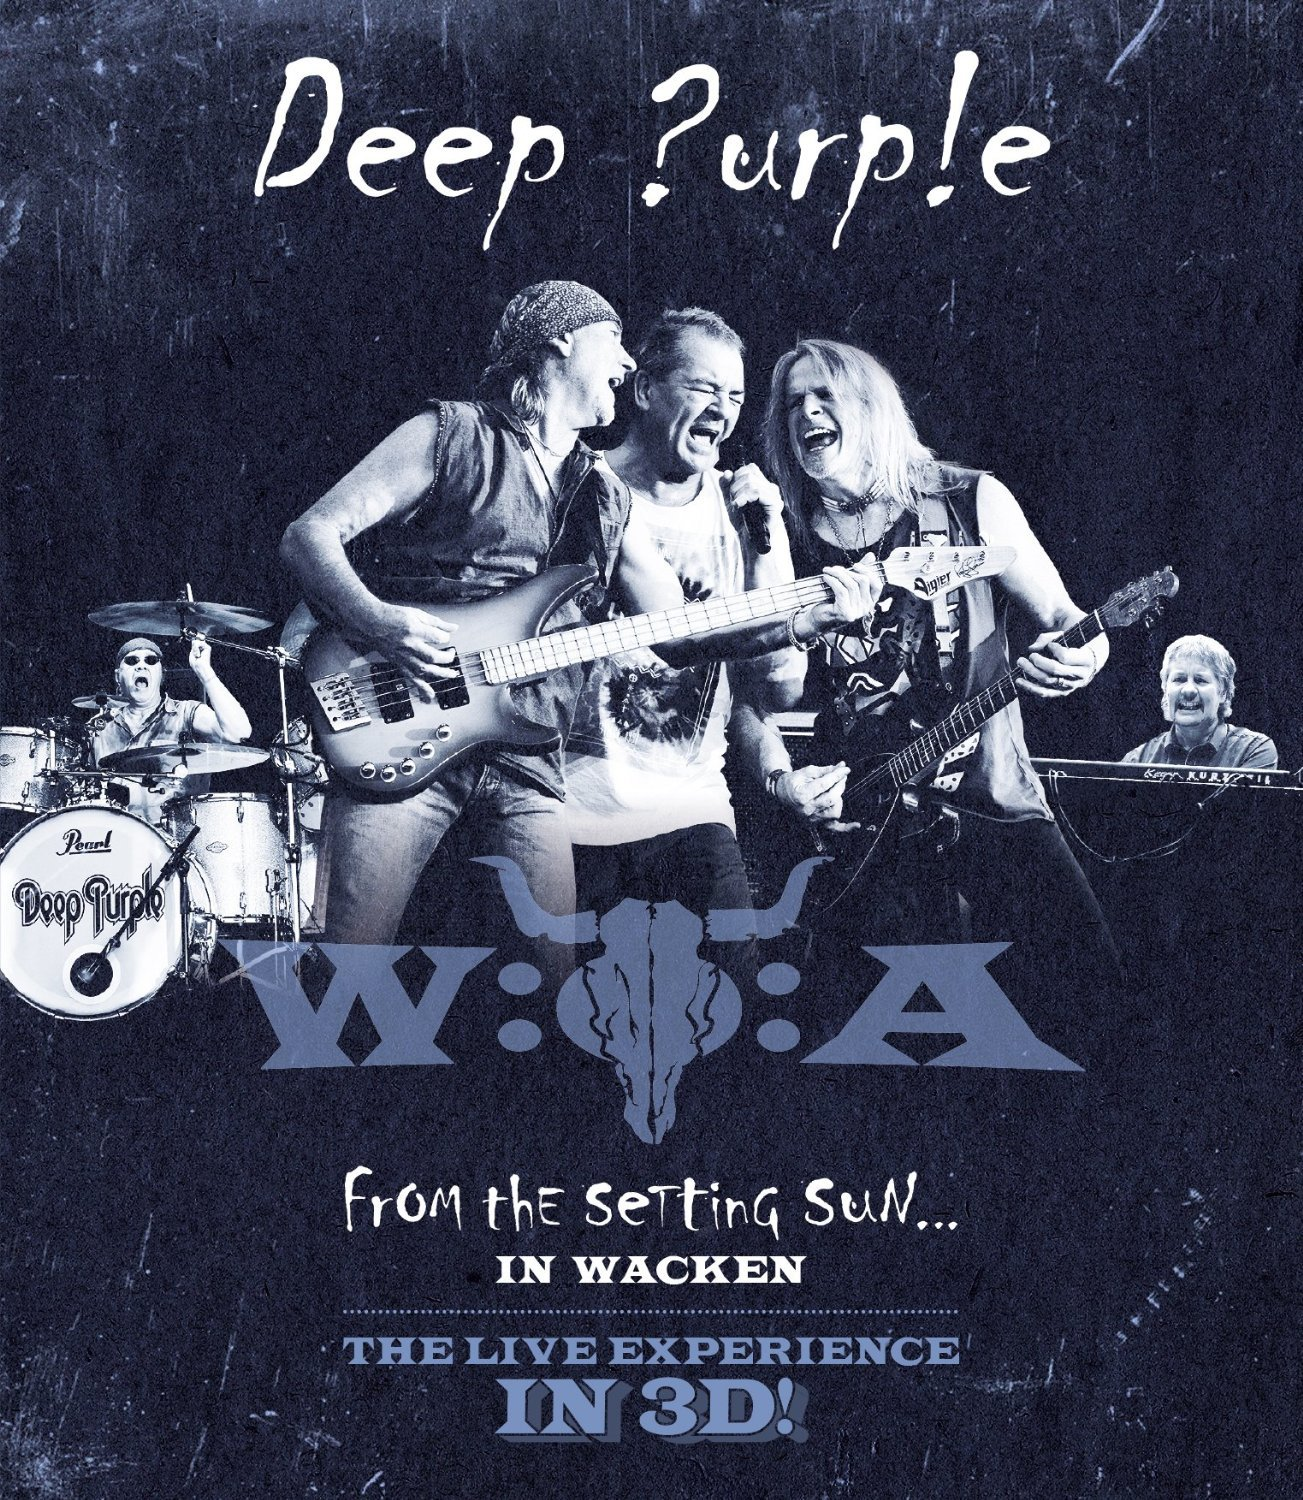 Deep Purple From the Setting Sun in Wacken (2015) 720p+1080p MBLURAY x264-DEV0